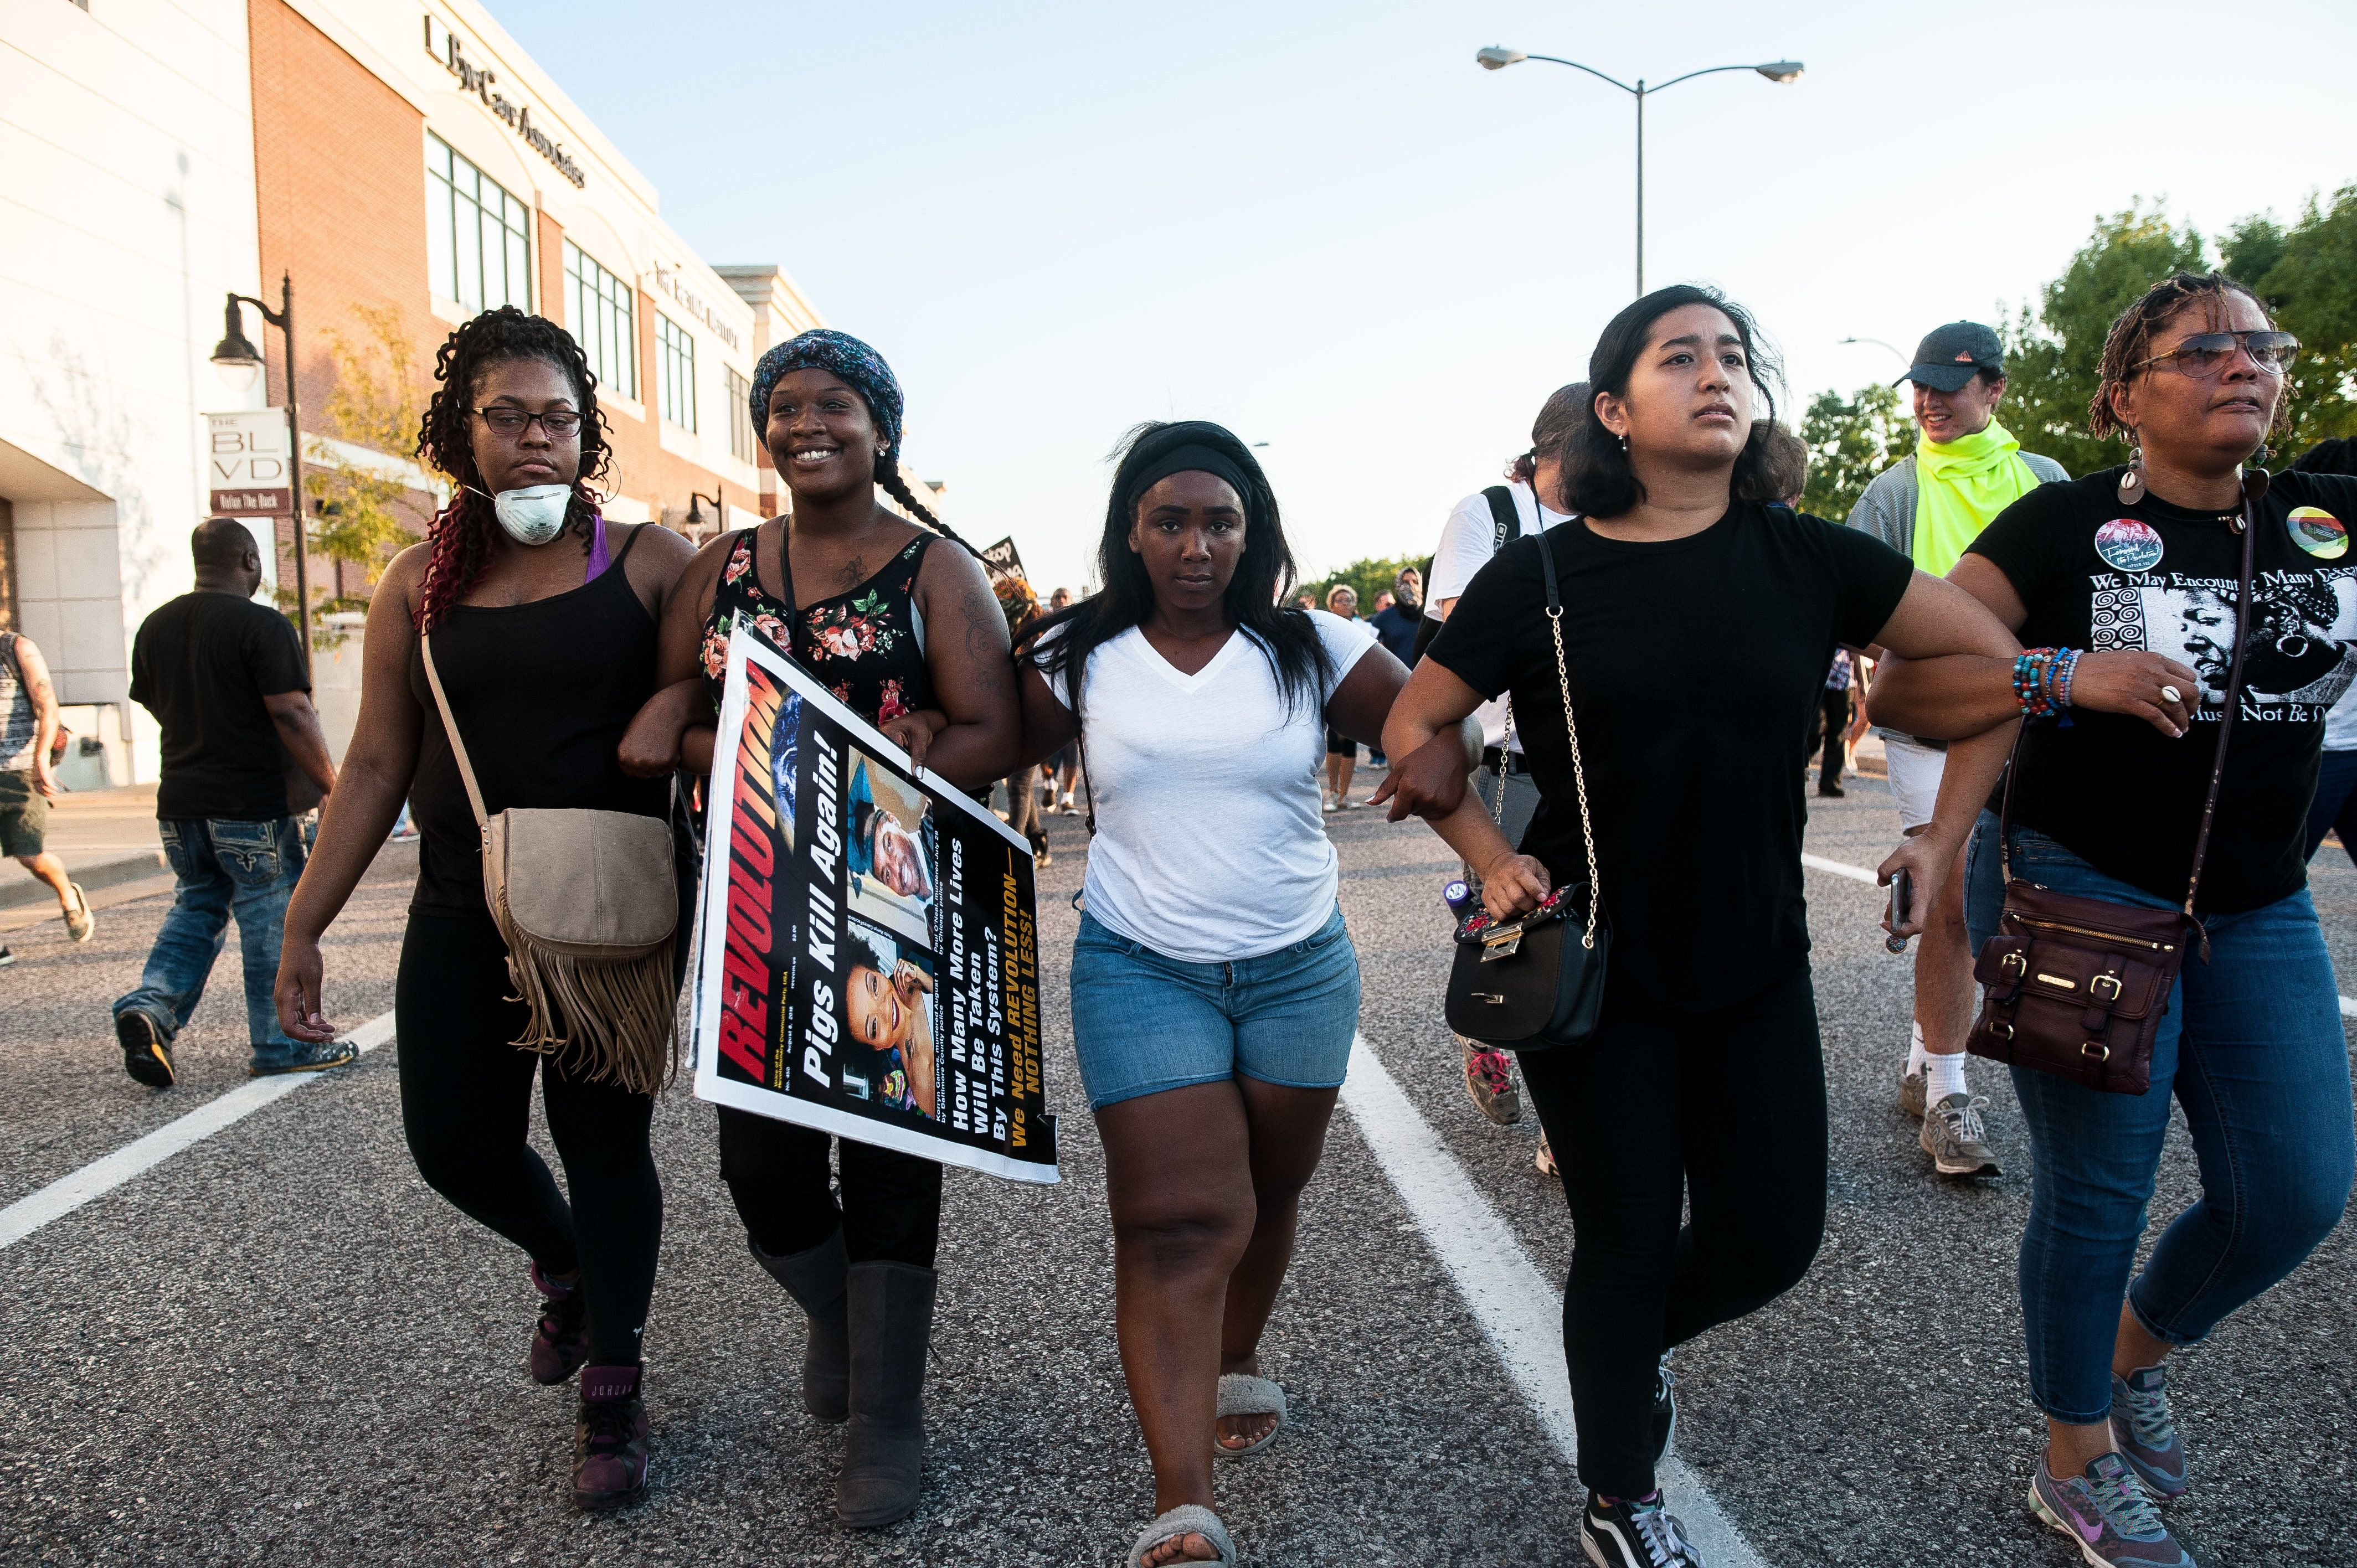 Protesters attempt to retake ground on Brentwood Blvd. after flanking around the police line, looking for a route to the highway.